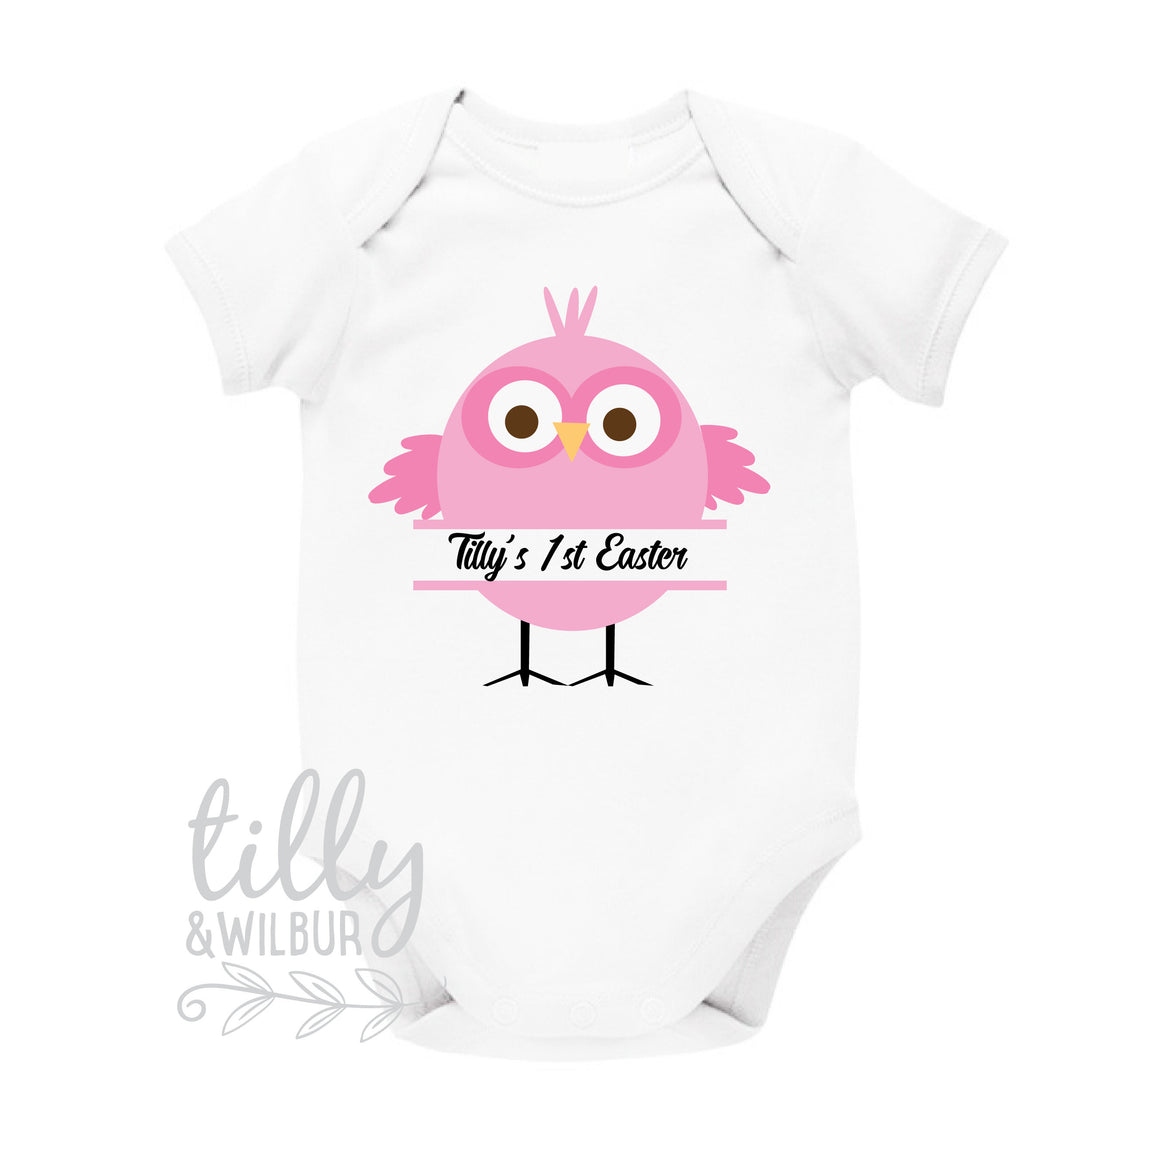 Personalised 1st Easter Baby Bodysuit, Little Chick, First Easter Baby Bodysuit, Newborn Easter Gift, 1st Easter Outfit, Baby's 1st Easter